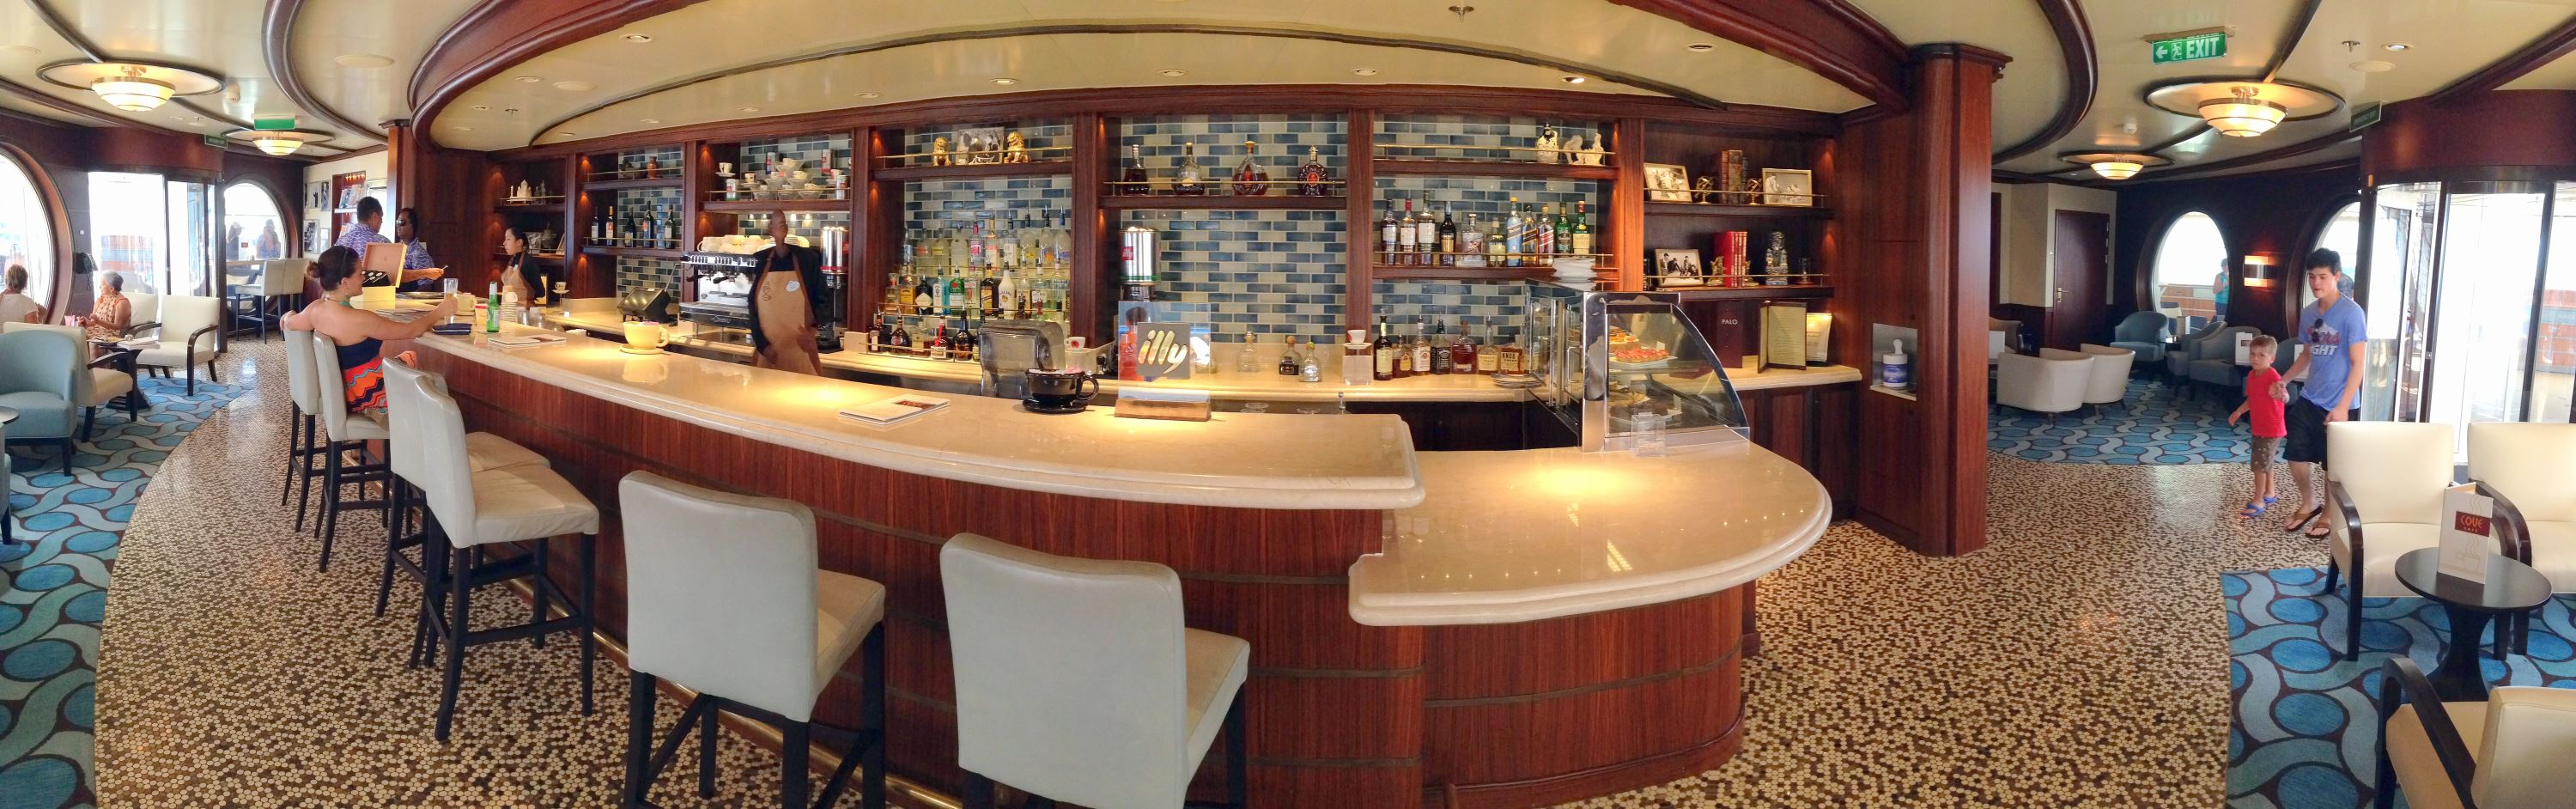 Cove Caf 233 On Disney Dream